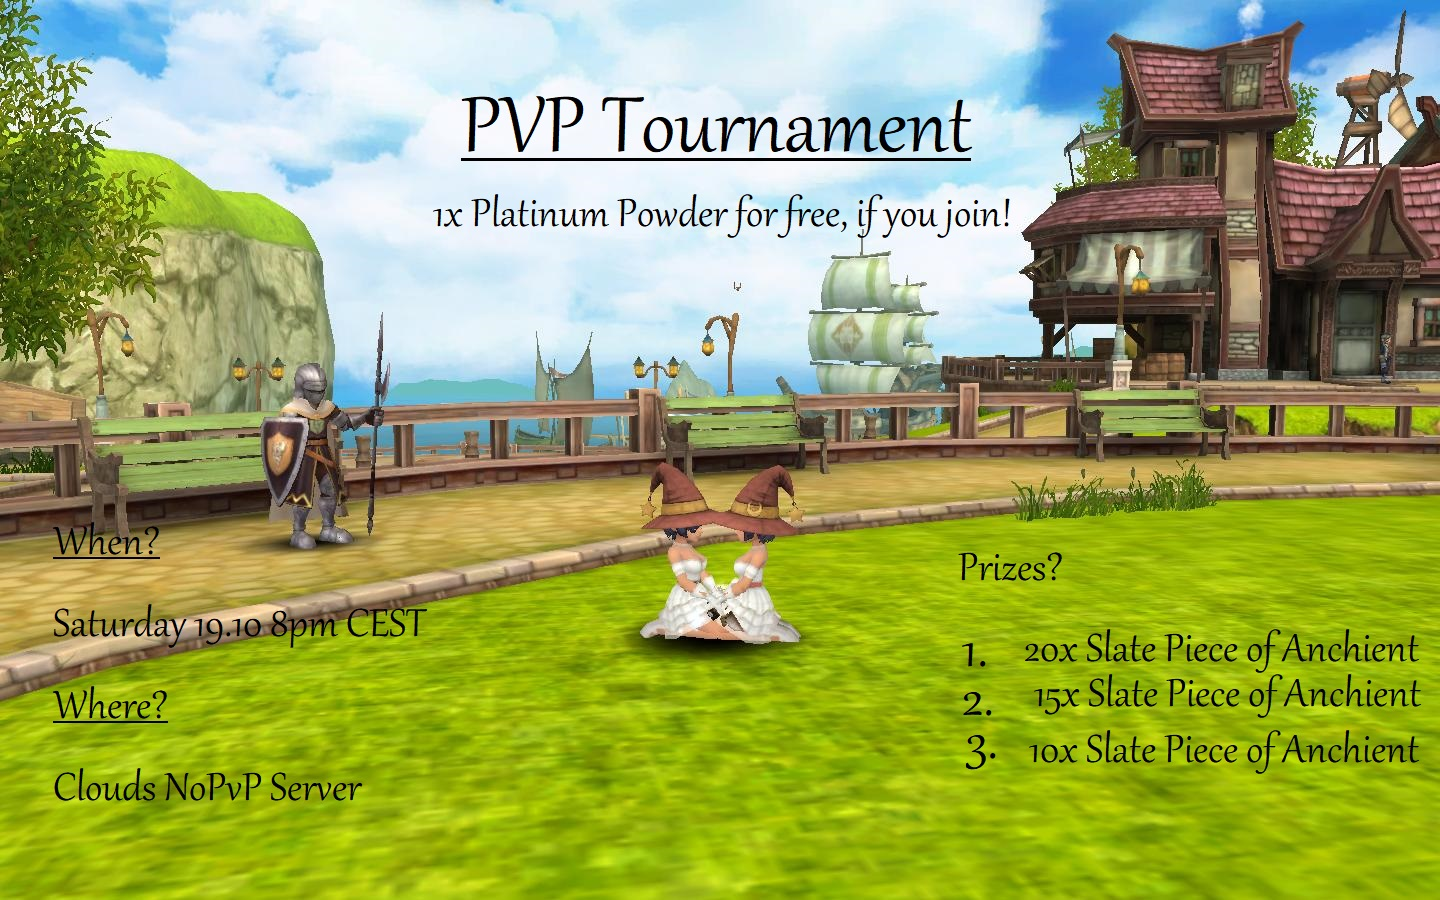 Pvp tournament